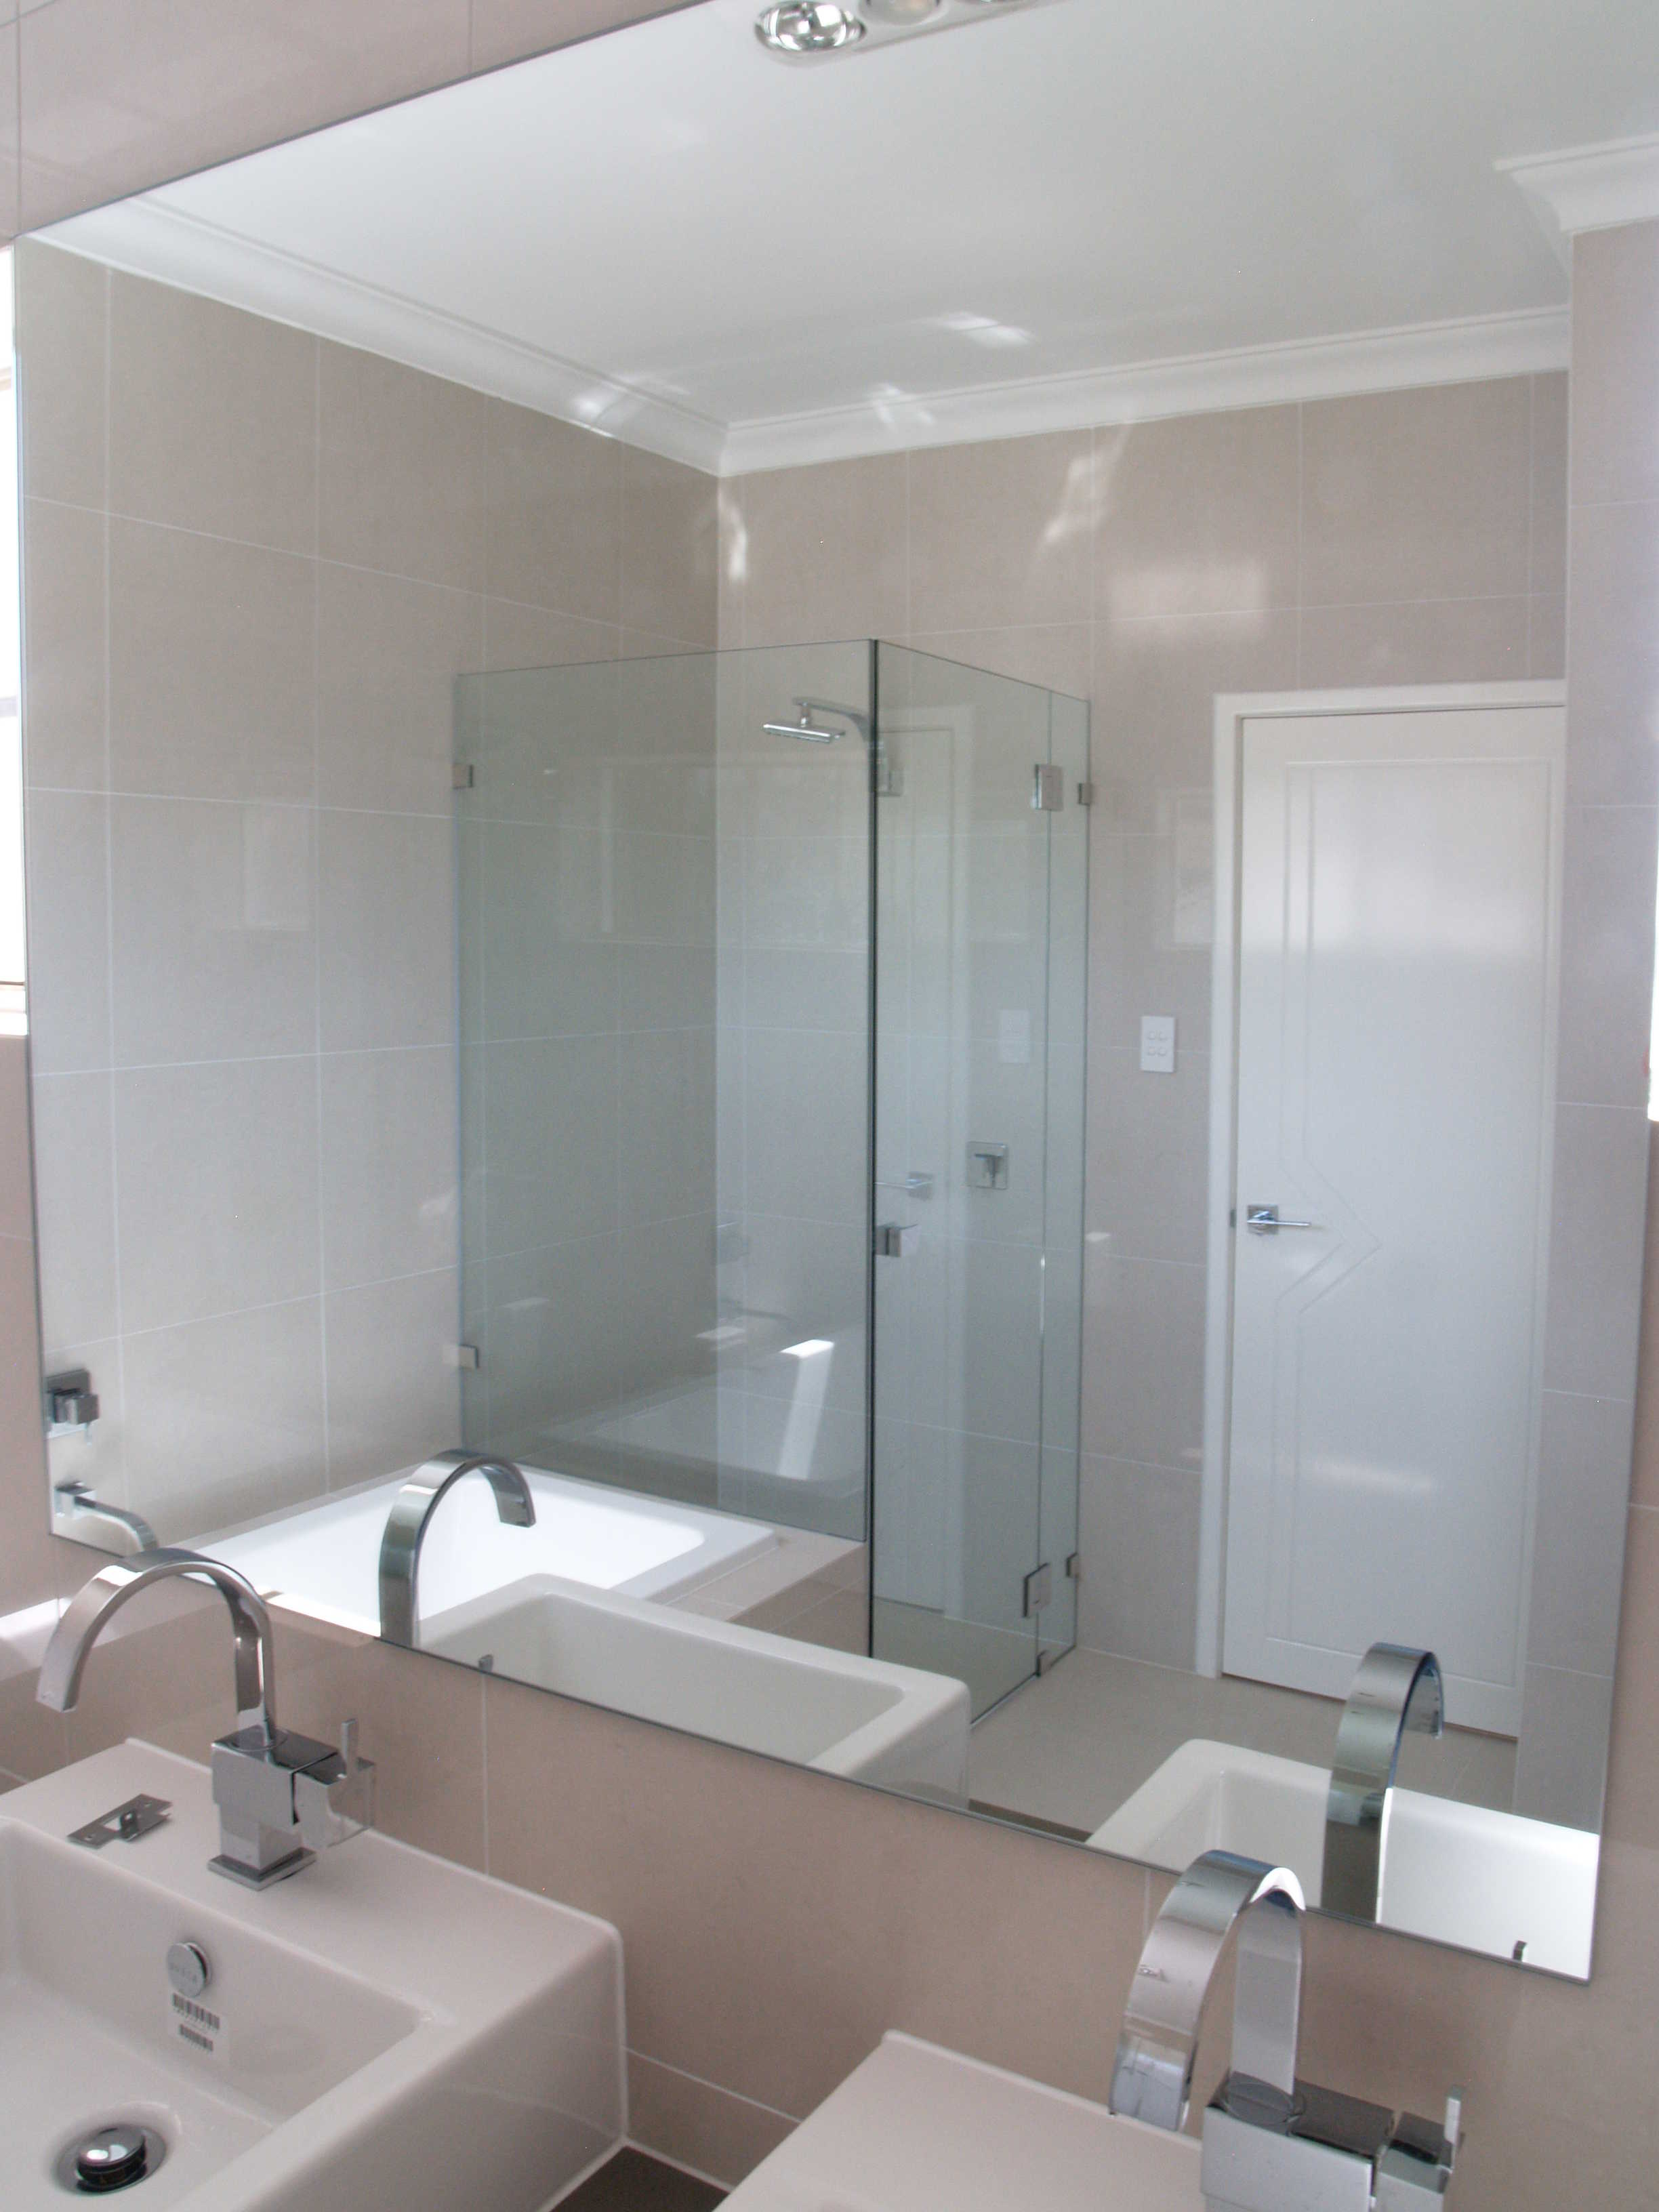 how to glue a bathroom mirror to the wall bathroom mirrors perth bedroom mirrors hallway mirrors 26492